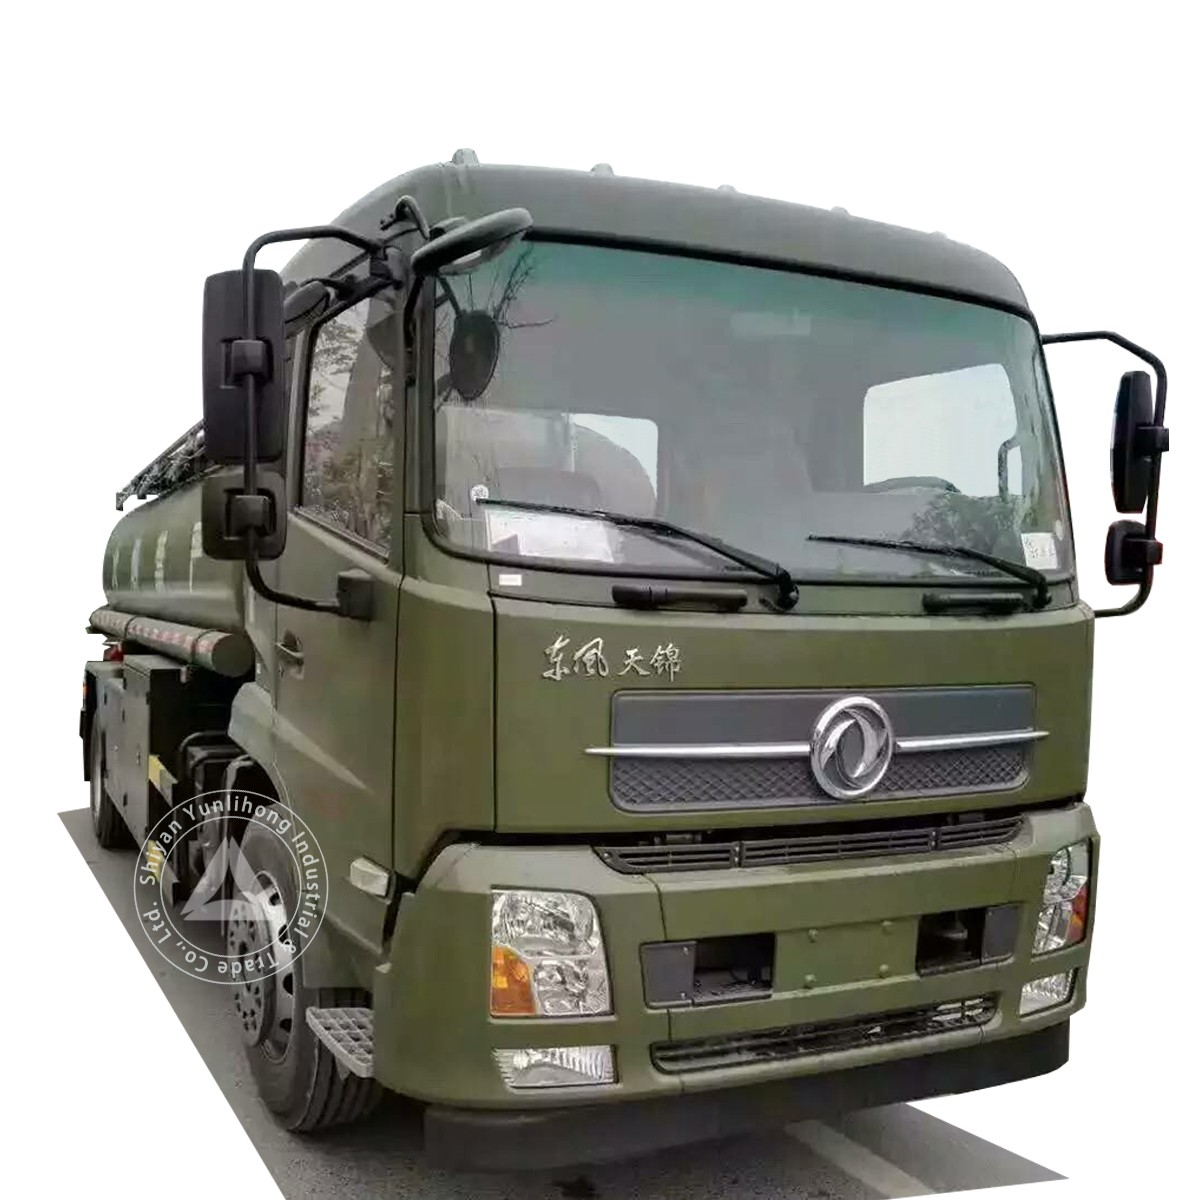 Dongfeng KR 4x2 GVW 12.5t Petroleum & Chemical Transport Tank Truck